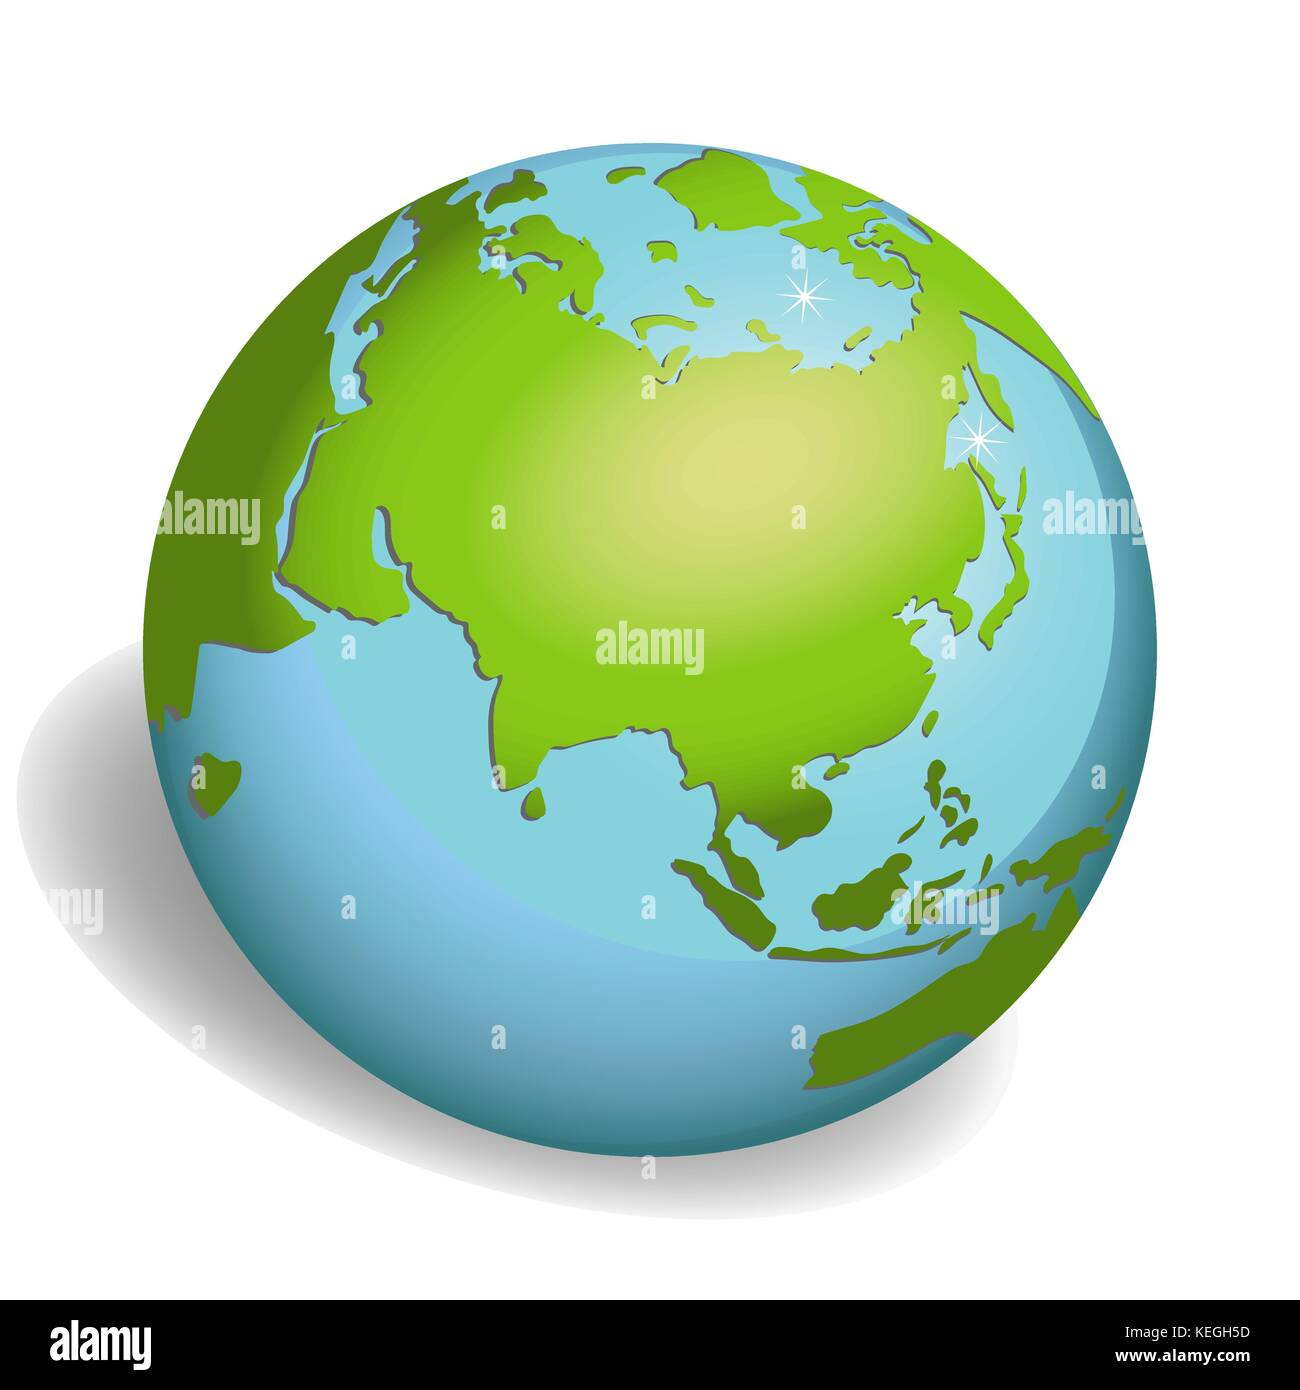 Earth globes isolated on white background - Stock Image